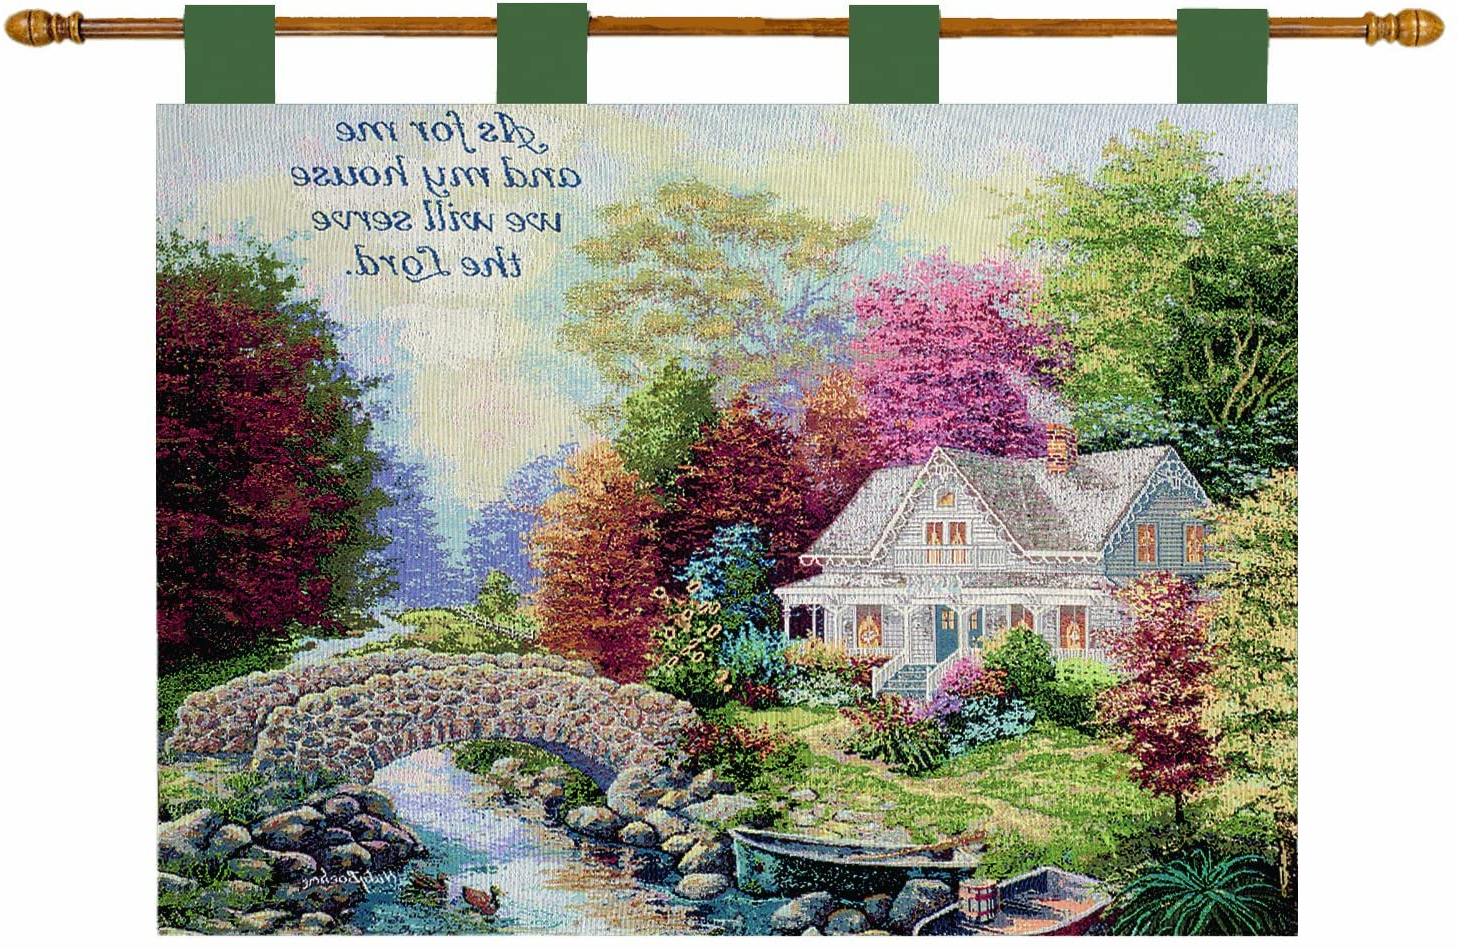 Popular Blended Fabric Garden Of Gethsemane Tapestries And Wall Hangings Inside Manual Inspirational Collection 26 X 36 Inch Wall Hanging And Finial Rod, Autumn Tranquility With Versenicky Boehme, 36 X 26 Inch (View 16 of 20)